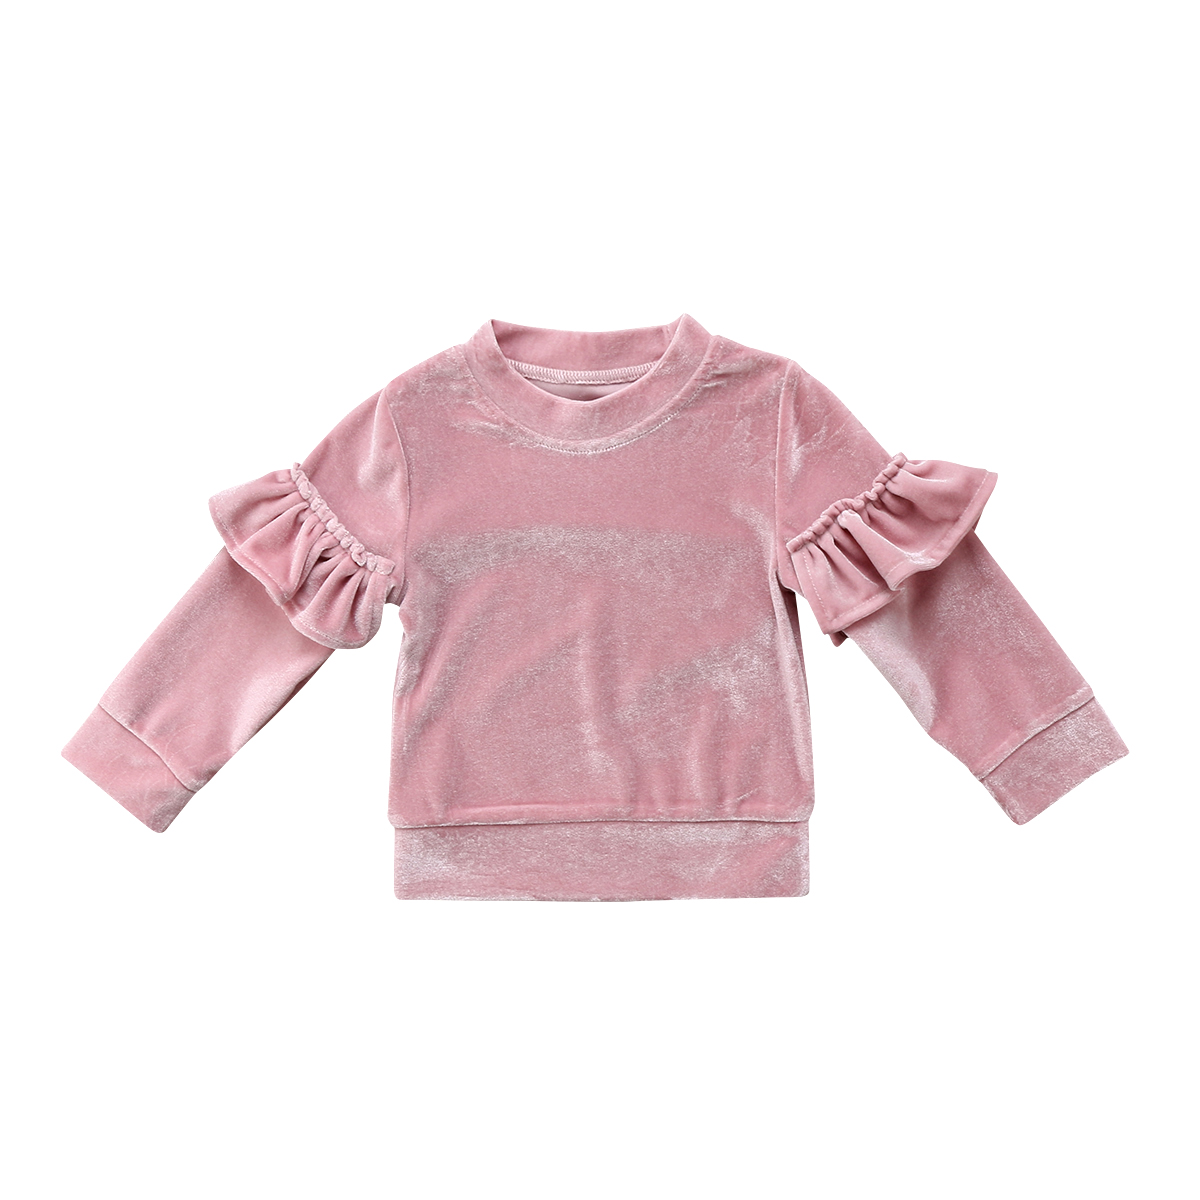 Kid Baby Girls Clothes Children Kids Velvet Ruffle Long Sleeves T-shirts For Gilrs Fleece Tops Jumper Fashion Girls clothing